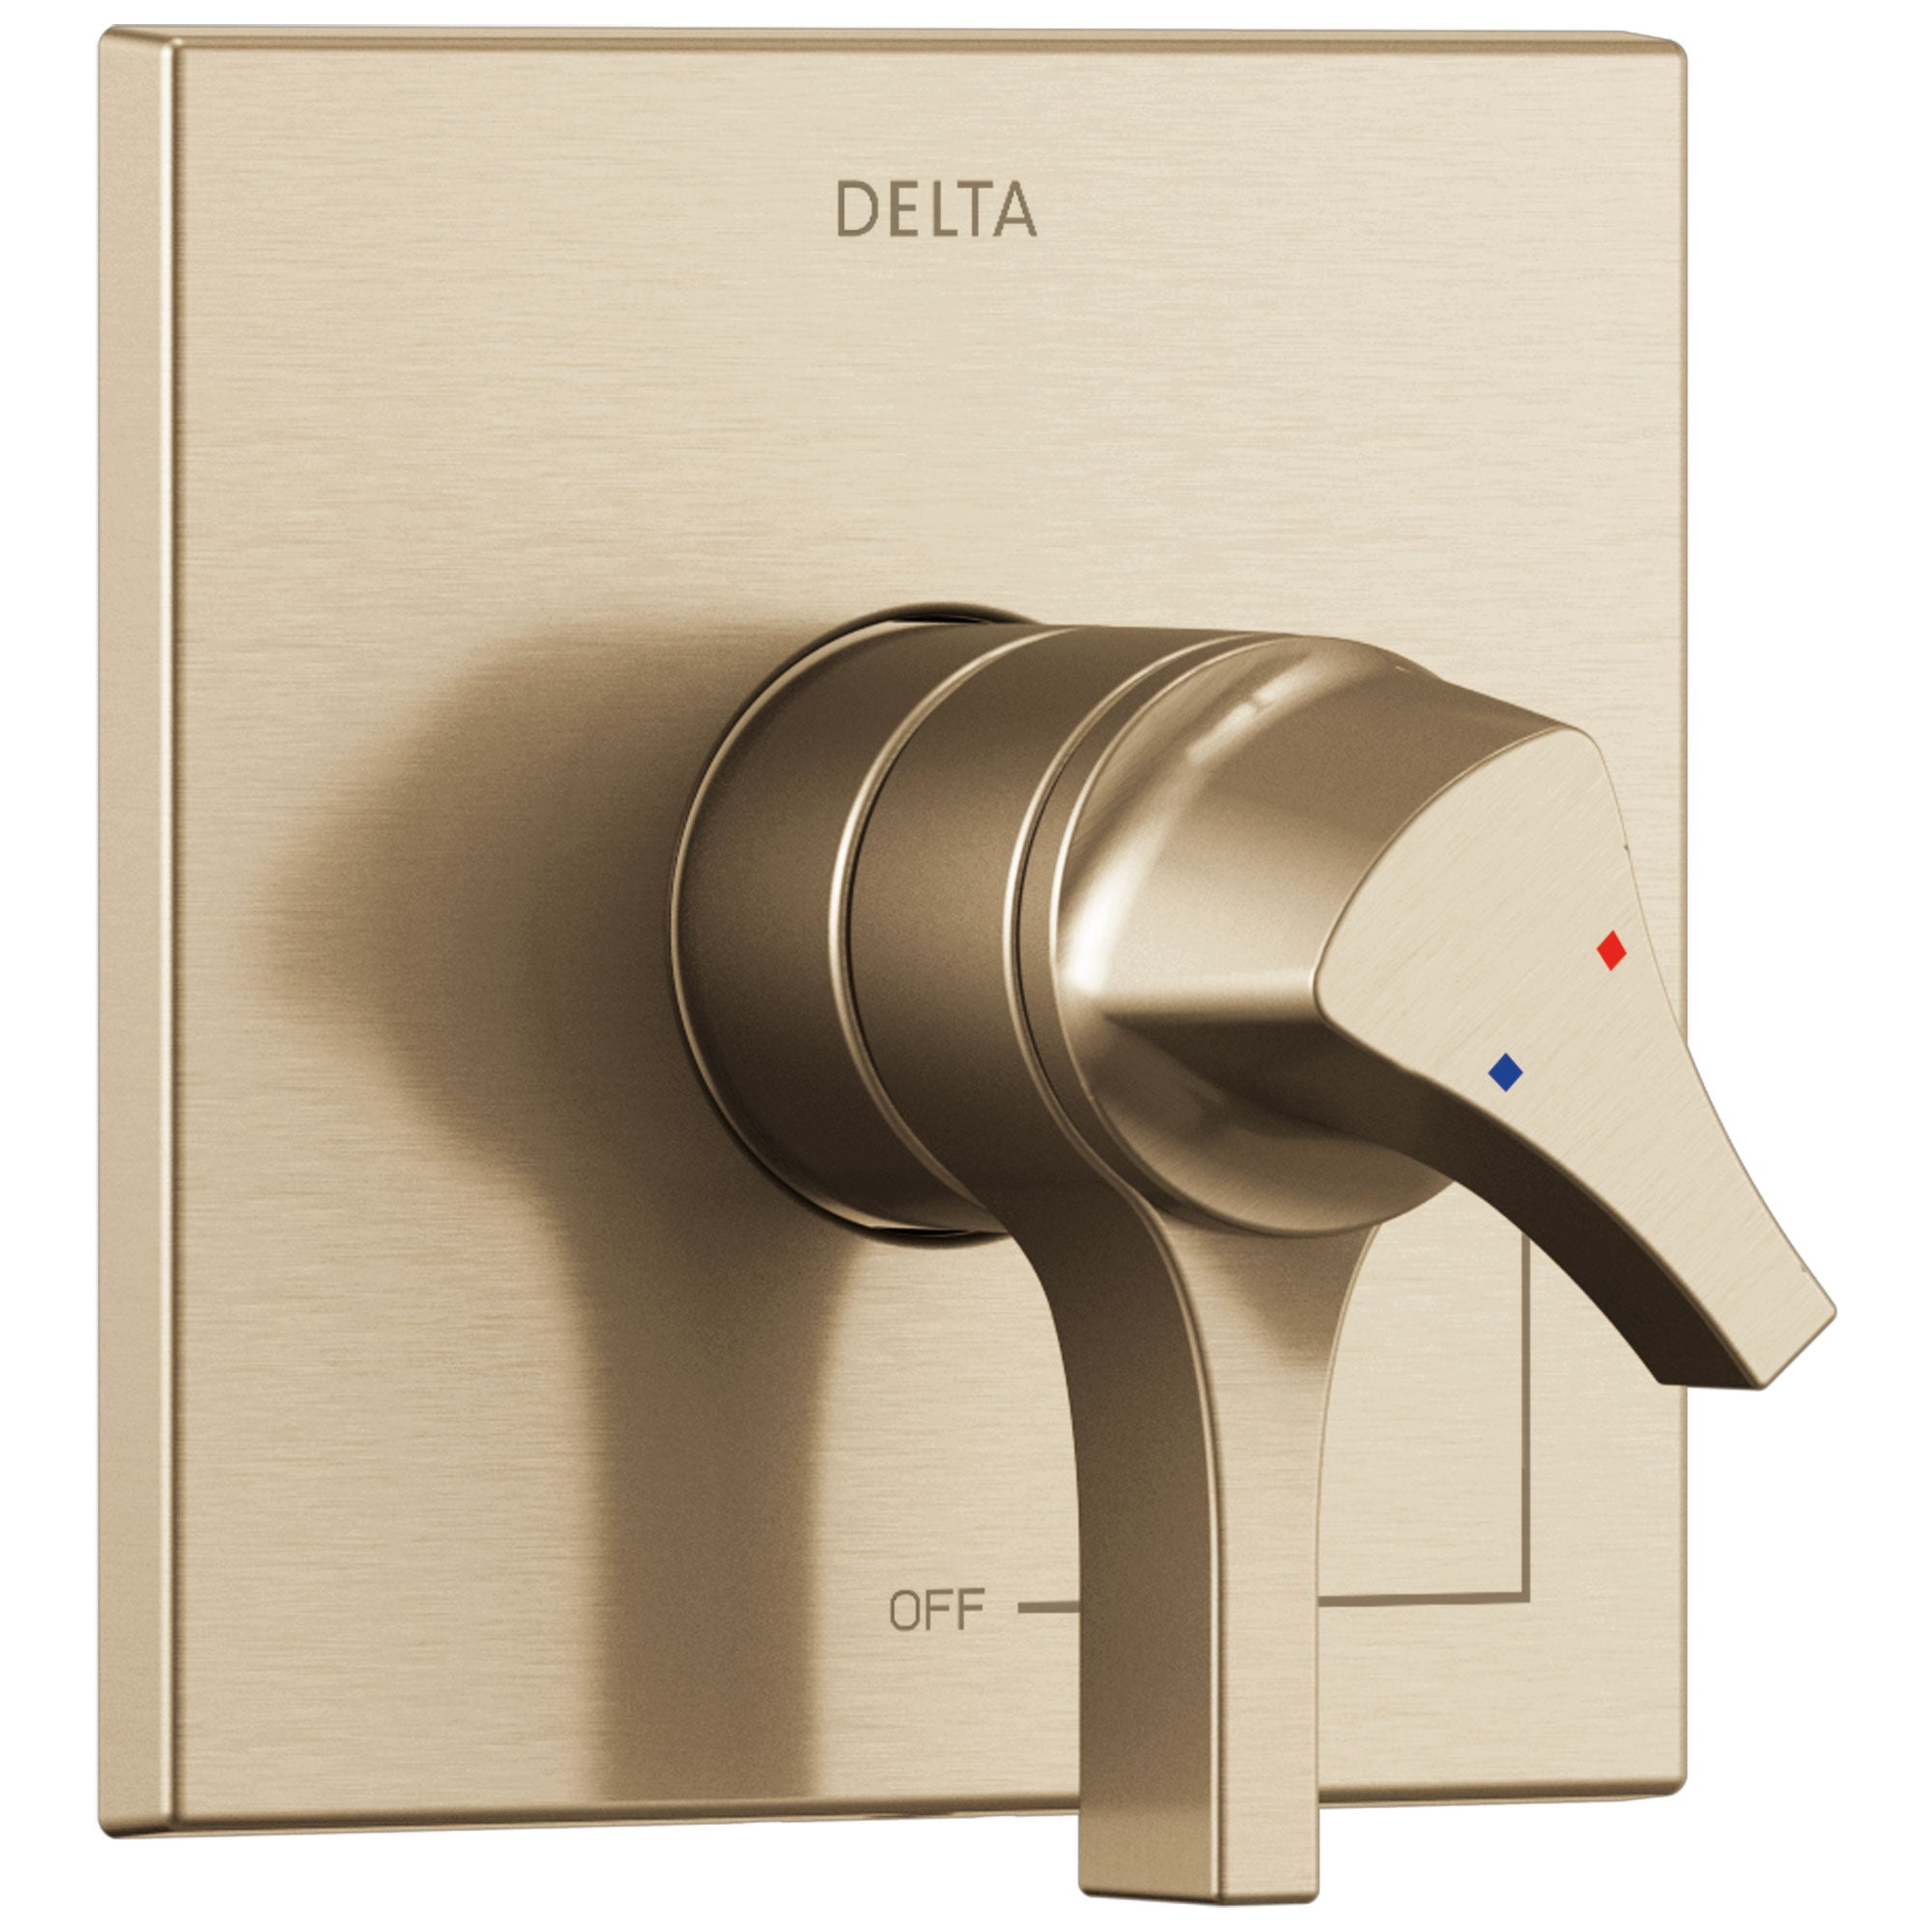 Delta Zura Champagne Bronze Finish Monitor 17 Series Shower Faucet Control Only Trim Kit (Requires Valve) DT17074CZ